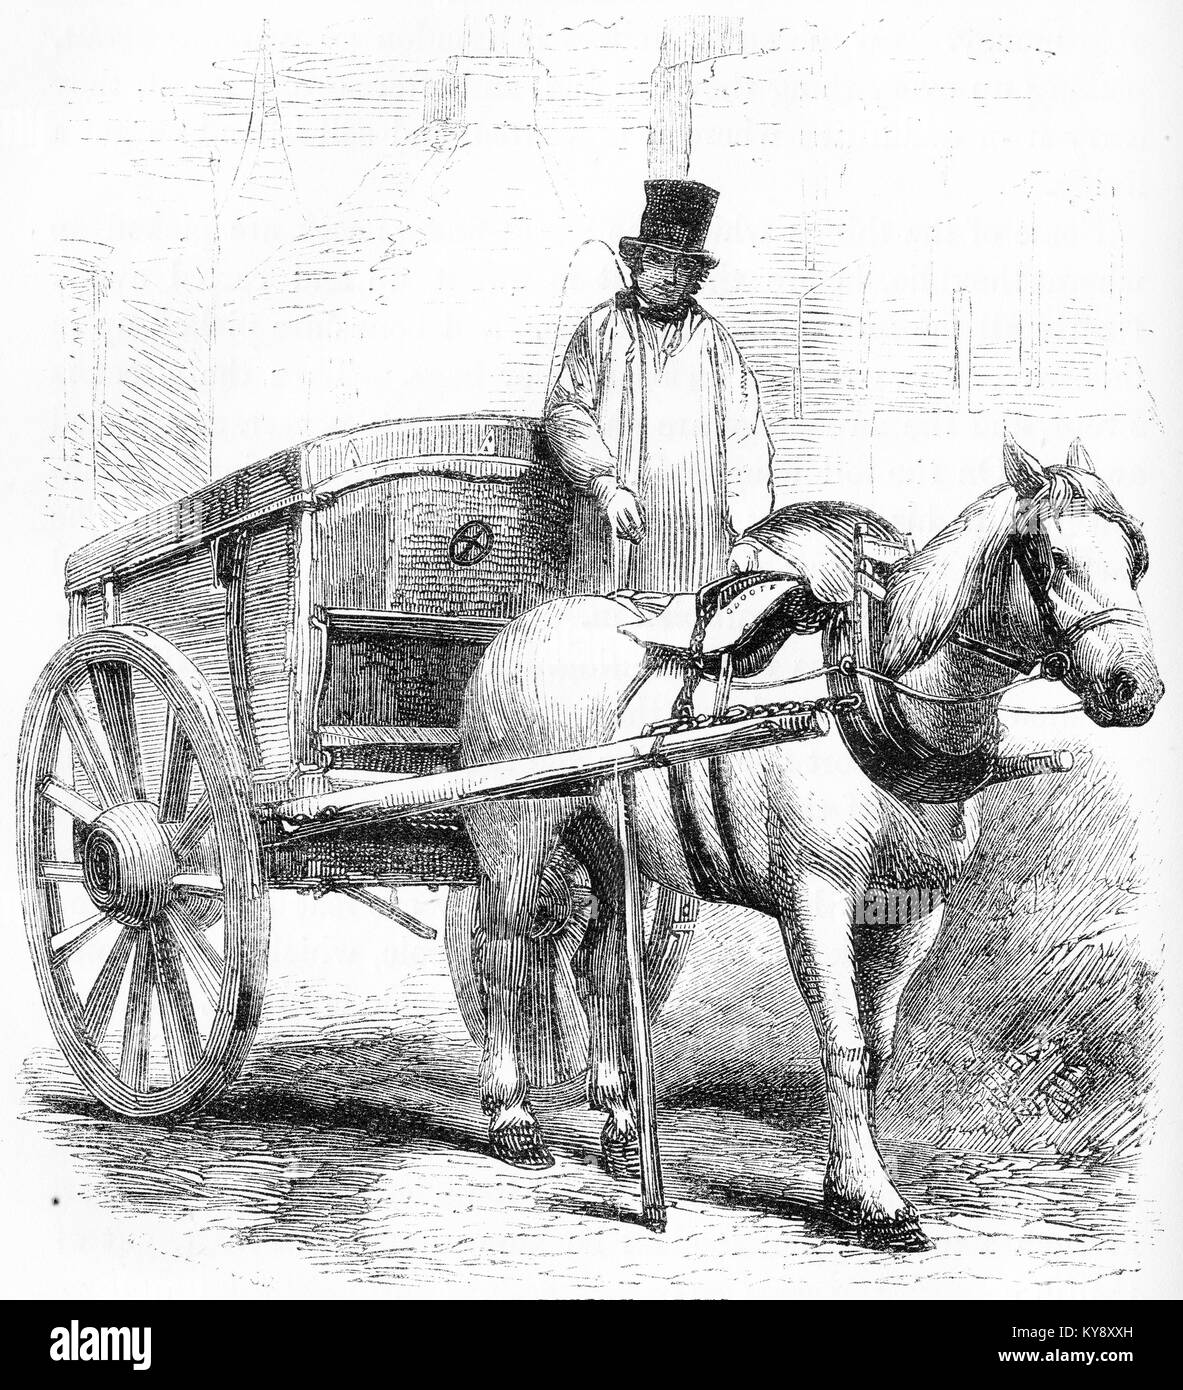 Engraving of a rubbish cart commonly used in London during the Victorian era. From an original engraving in the - Stock Image